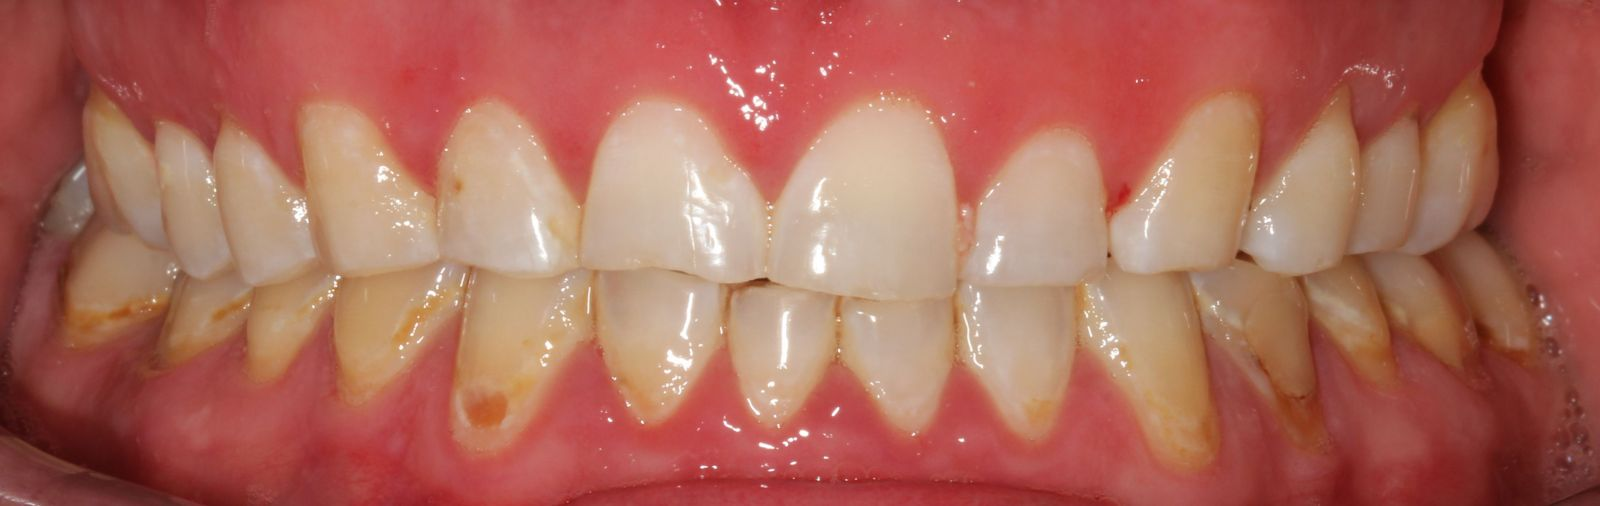 Before resin veneer smile makeover front view